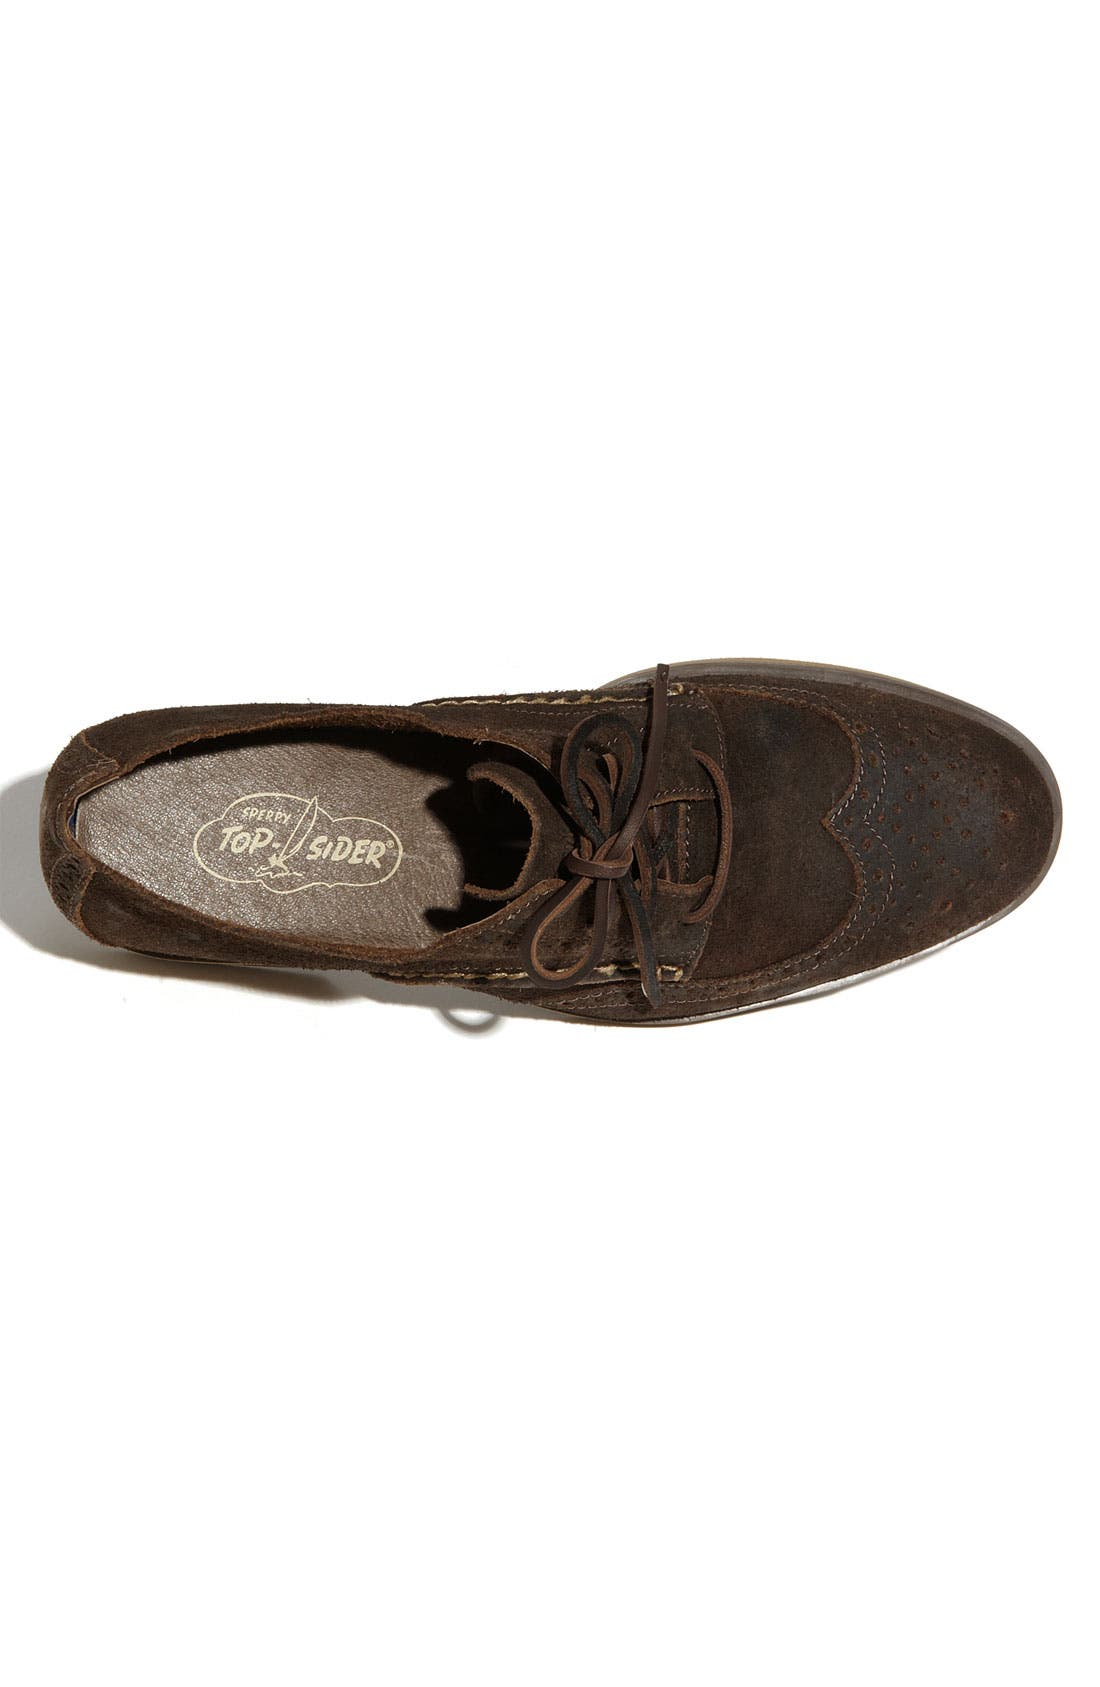 Alternate Image 3  - Sperry Top-Sider® 'Boat' Wingtip Oxford (Online Exclusive)